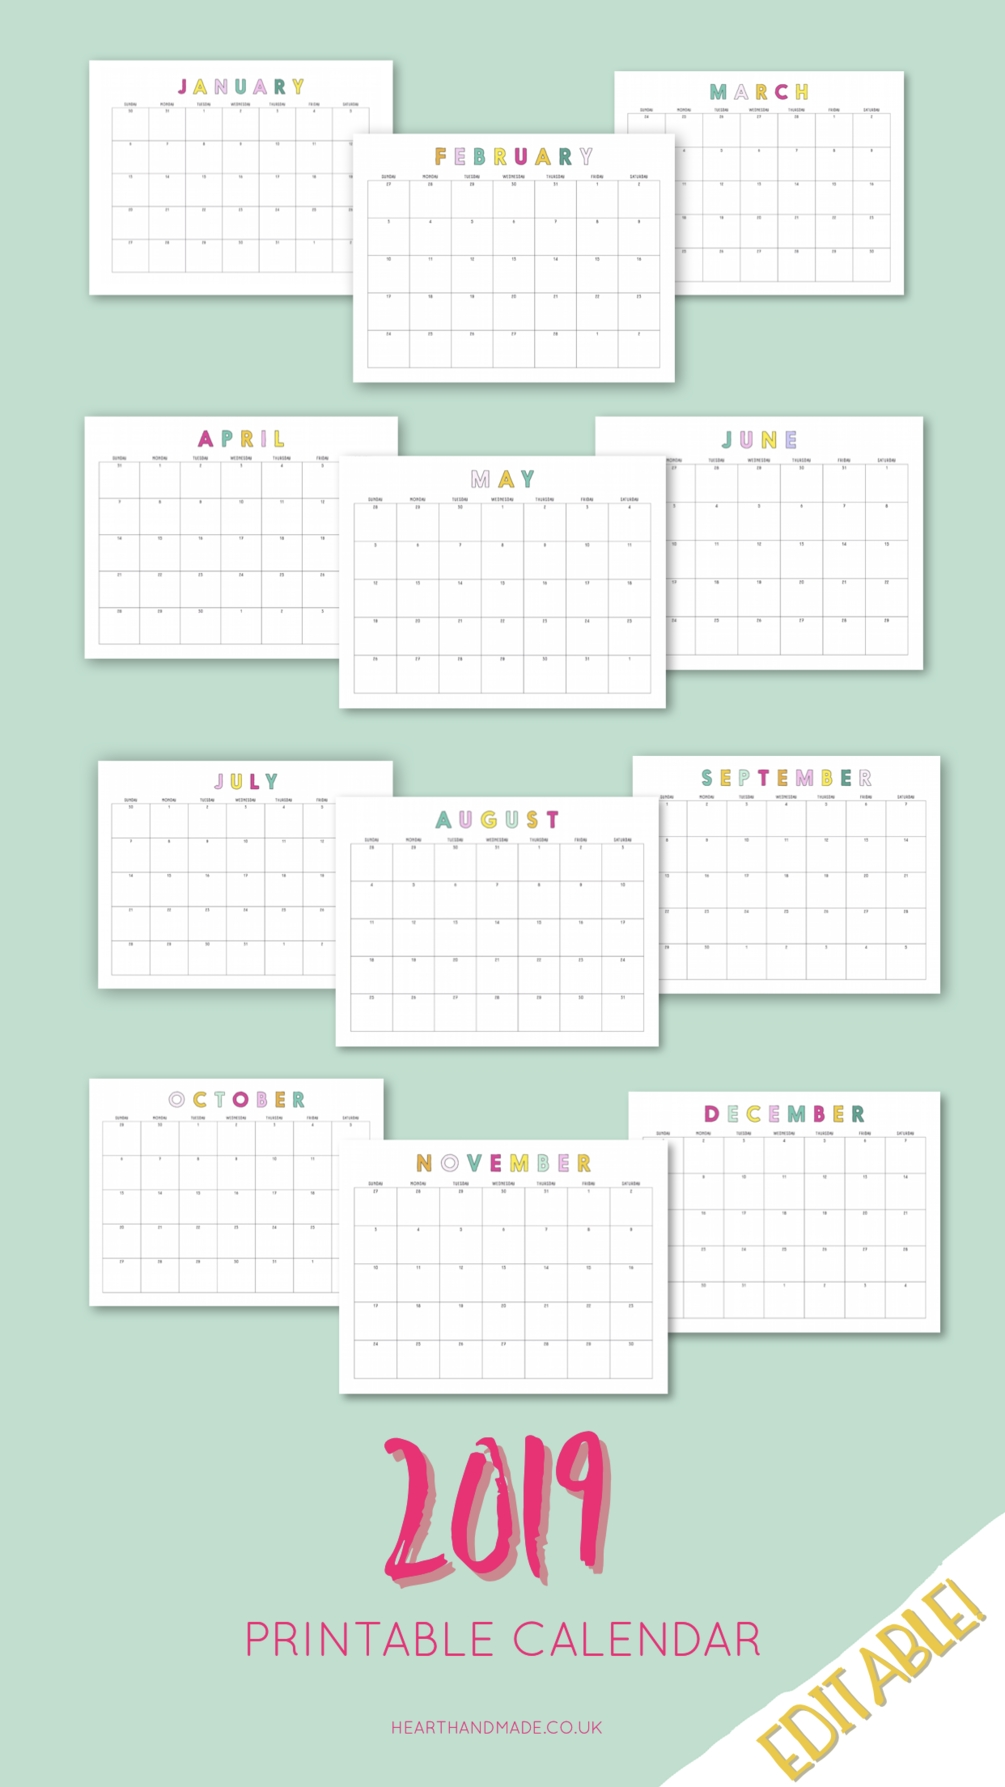 2019 Rainbow Editable Calendar | Printable Planner, Craft